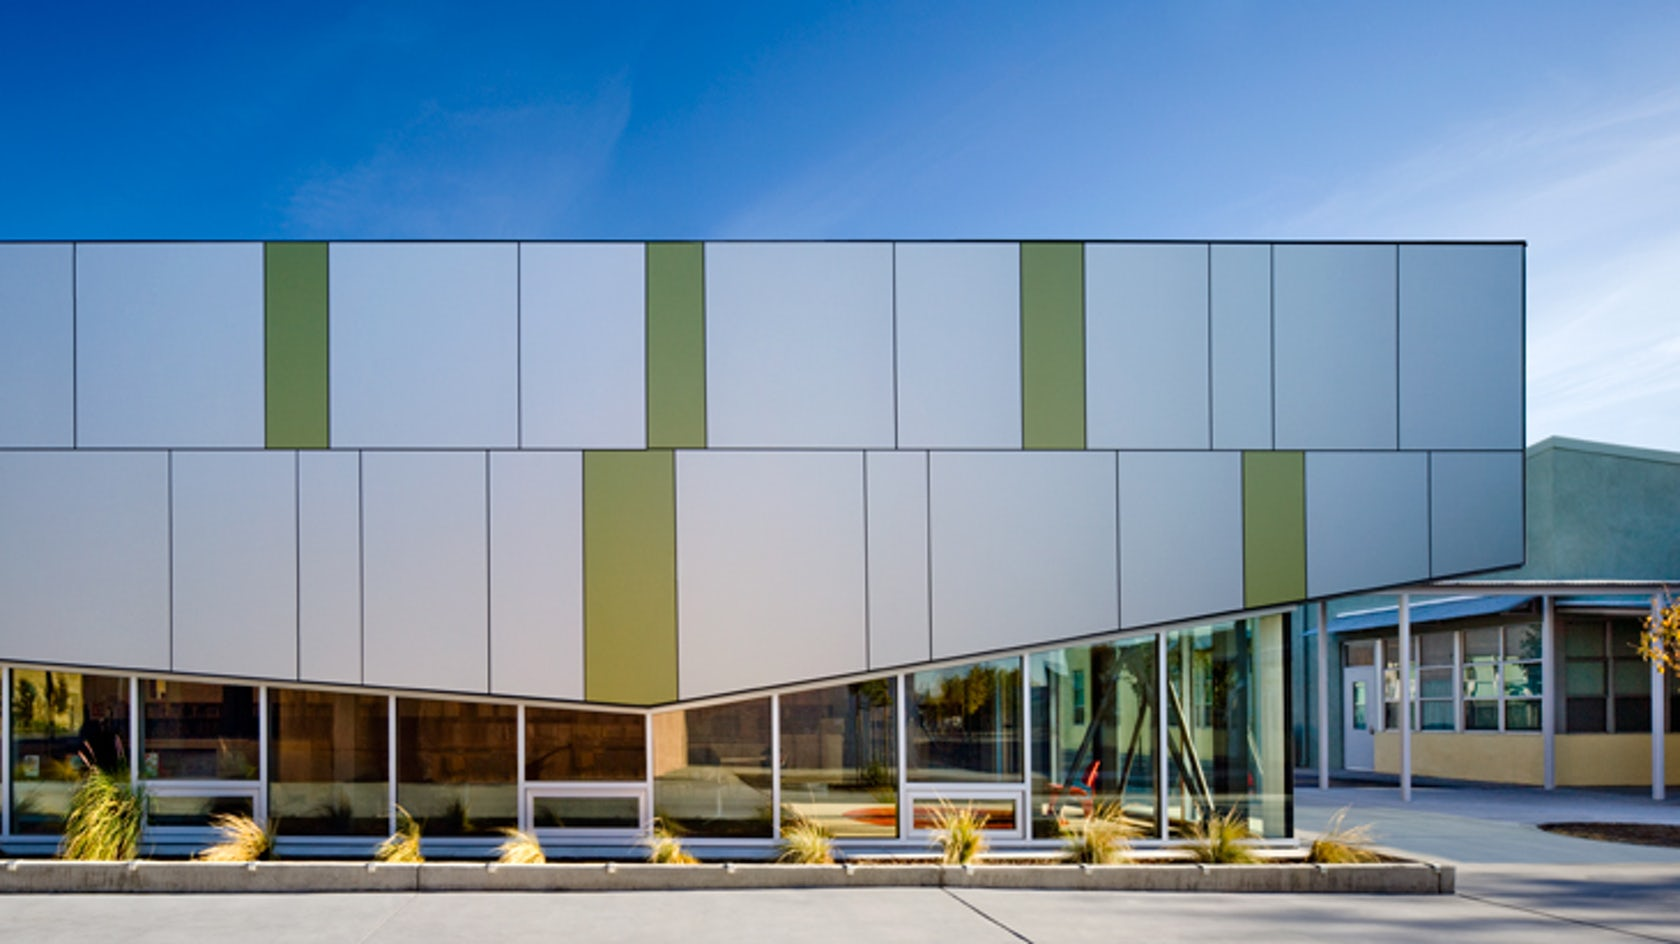 Orchard school library addition architizer for Exterior design school